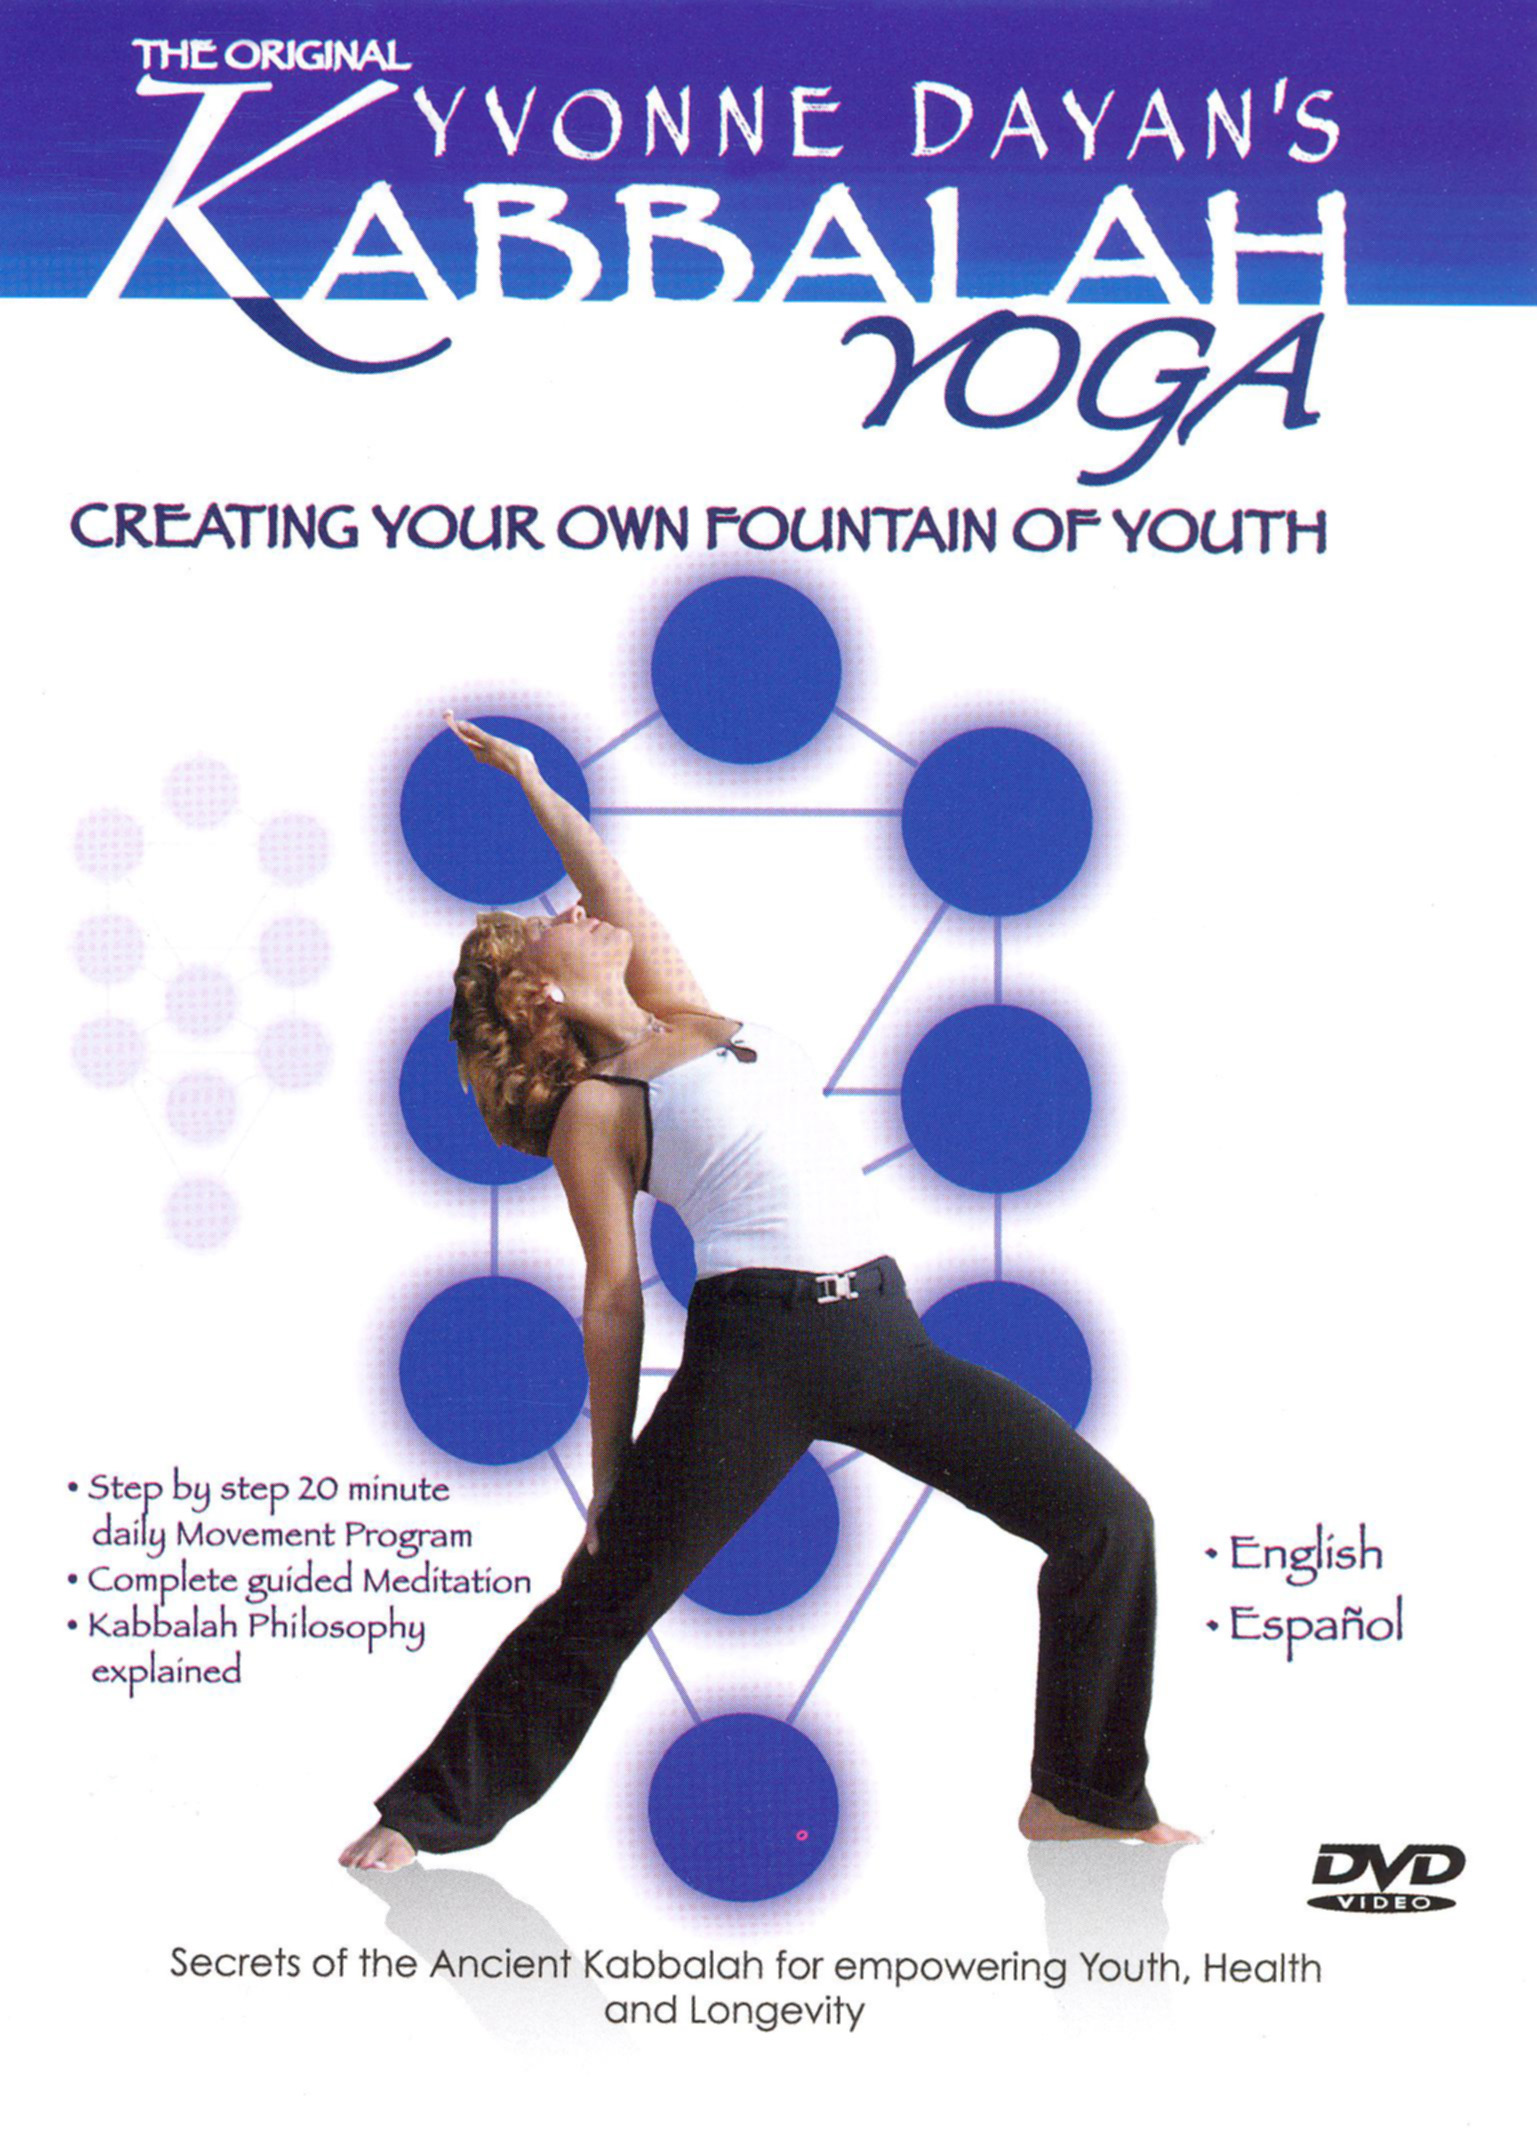 Kabbalah Yoga: Creating Your Own Fountain of Youth